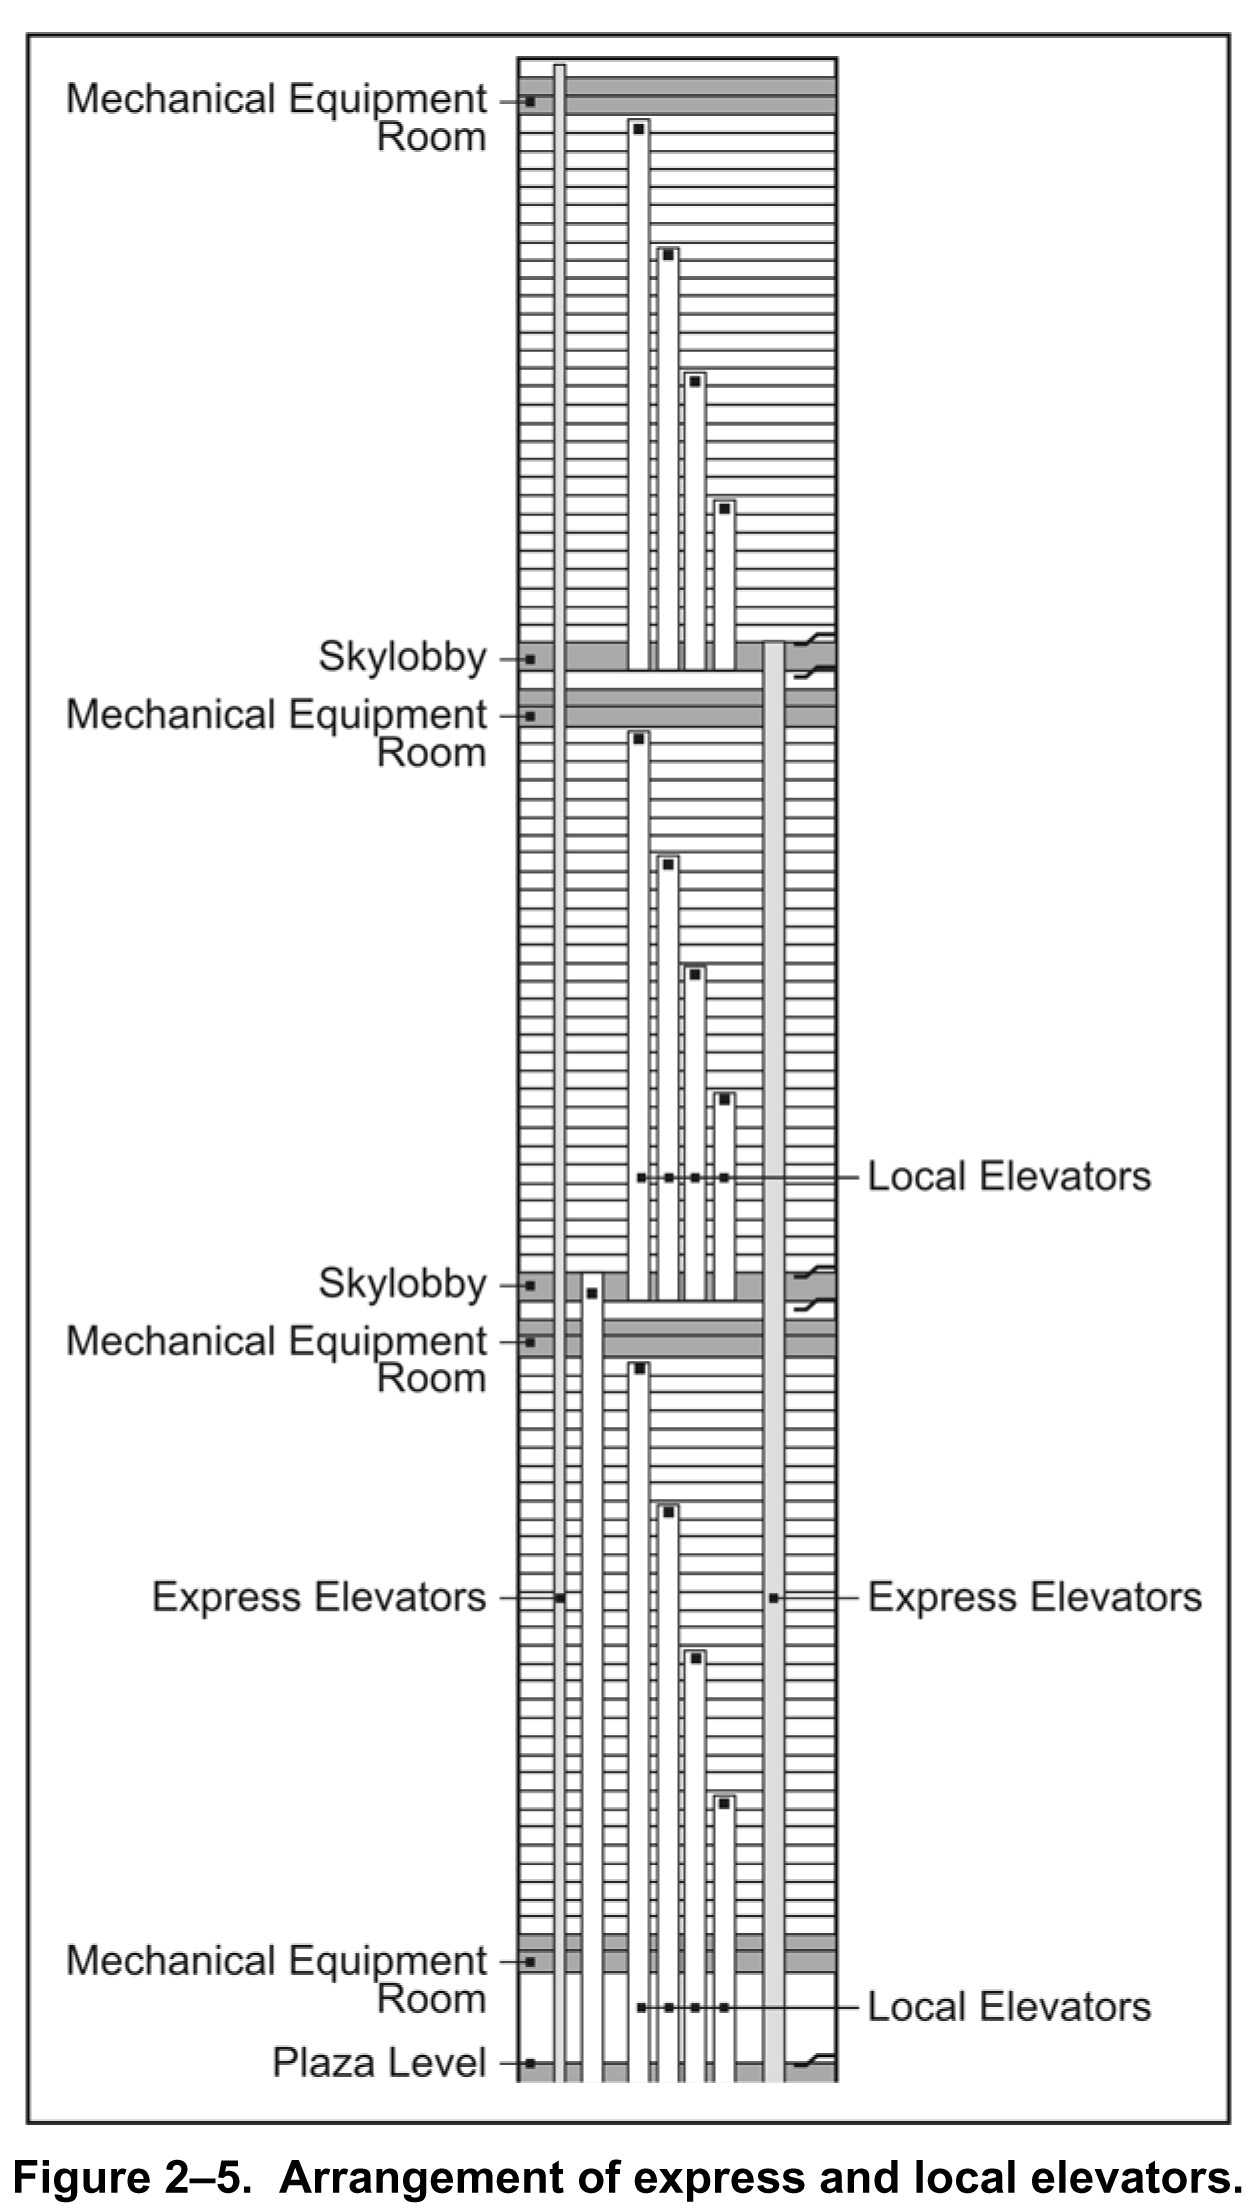 File:WTC 1&2 Arrangement of Express and Local Elevators.jpg ...